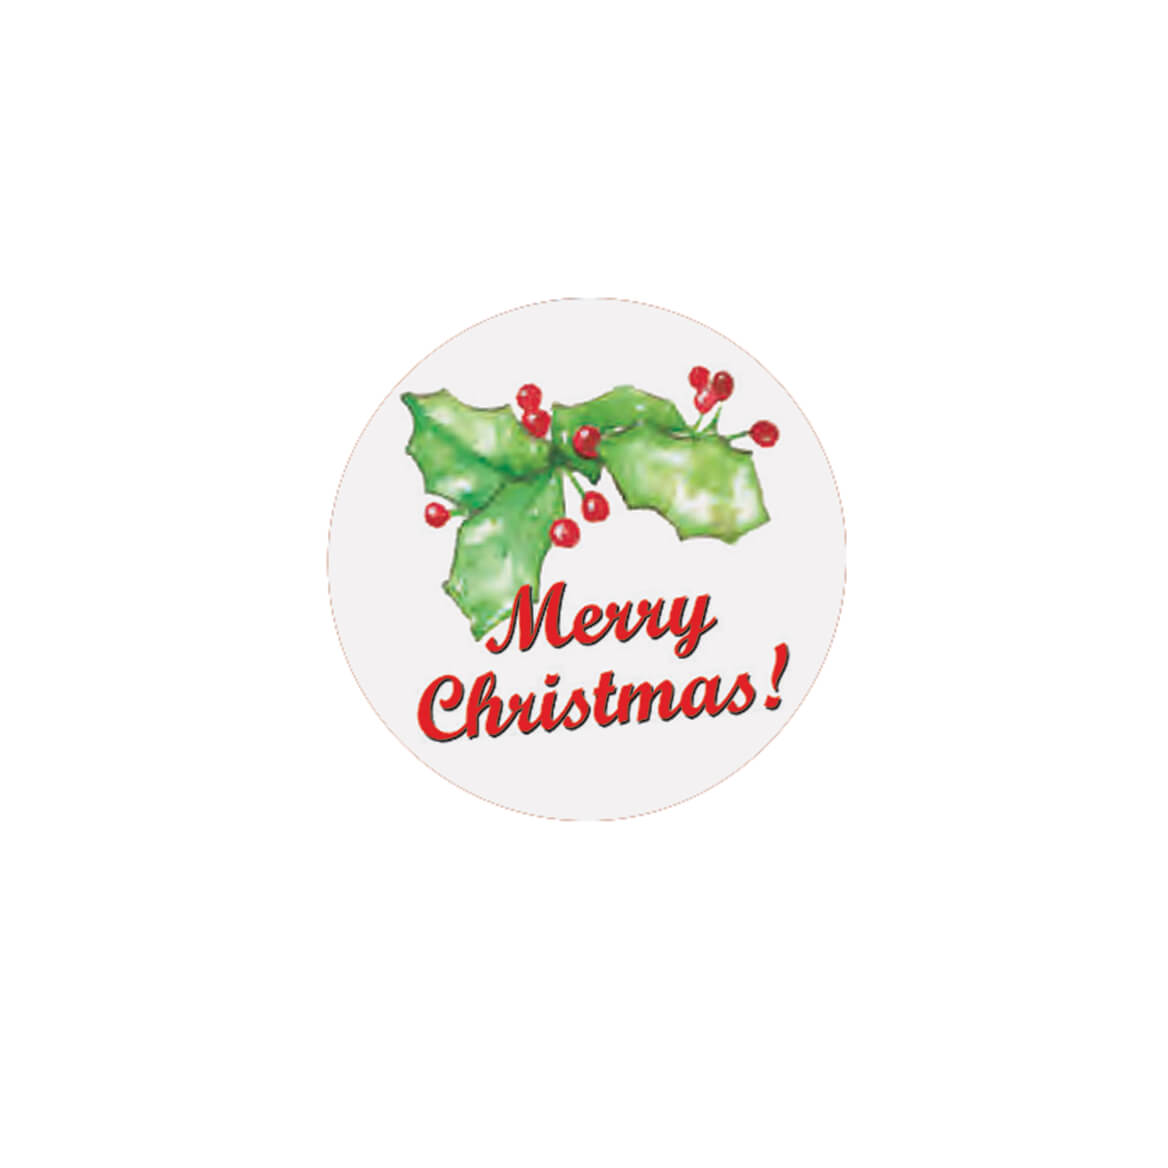 Merry Christmas Seals Set of 250-325251